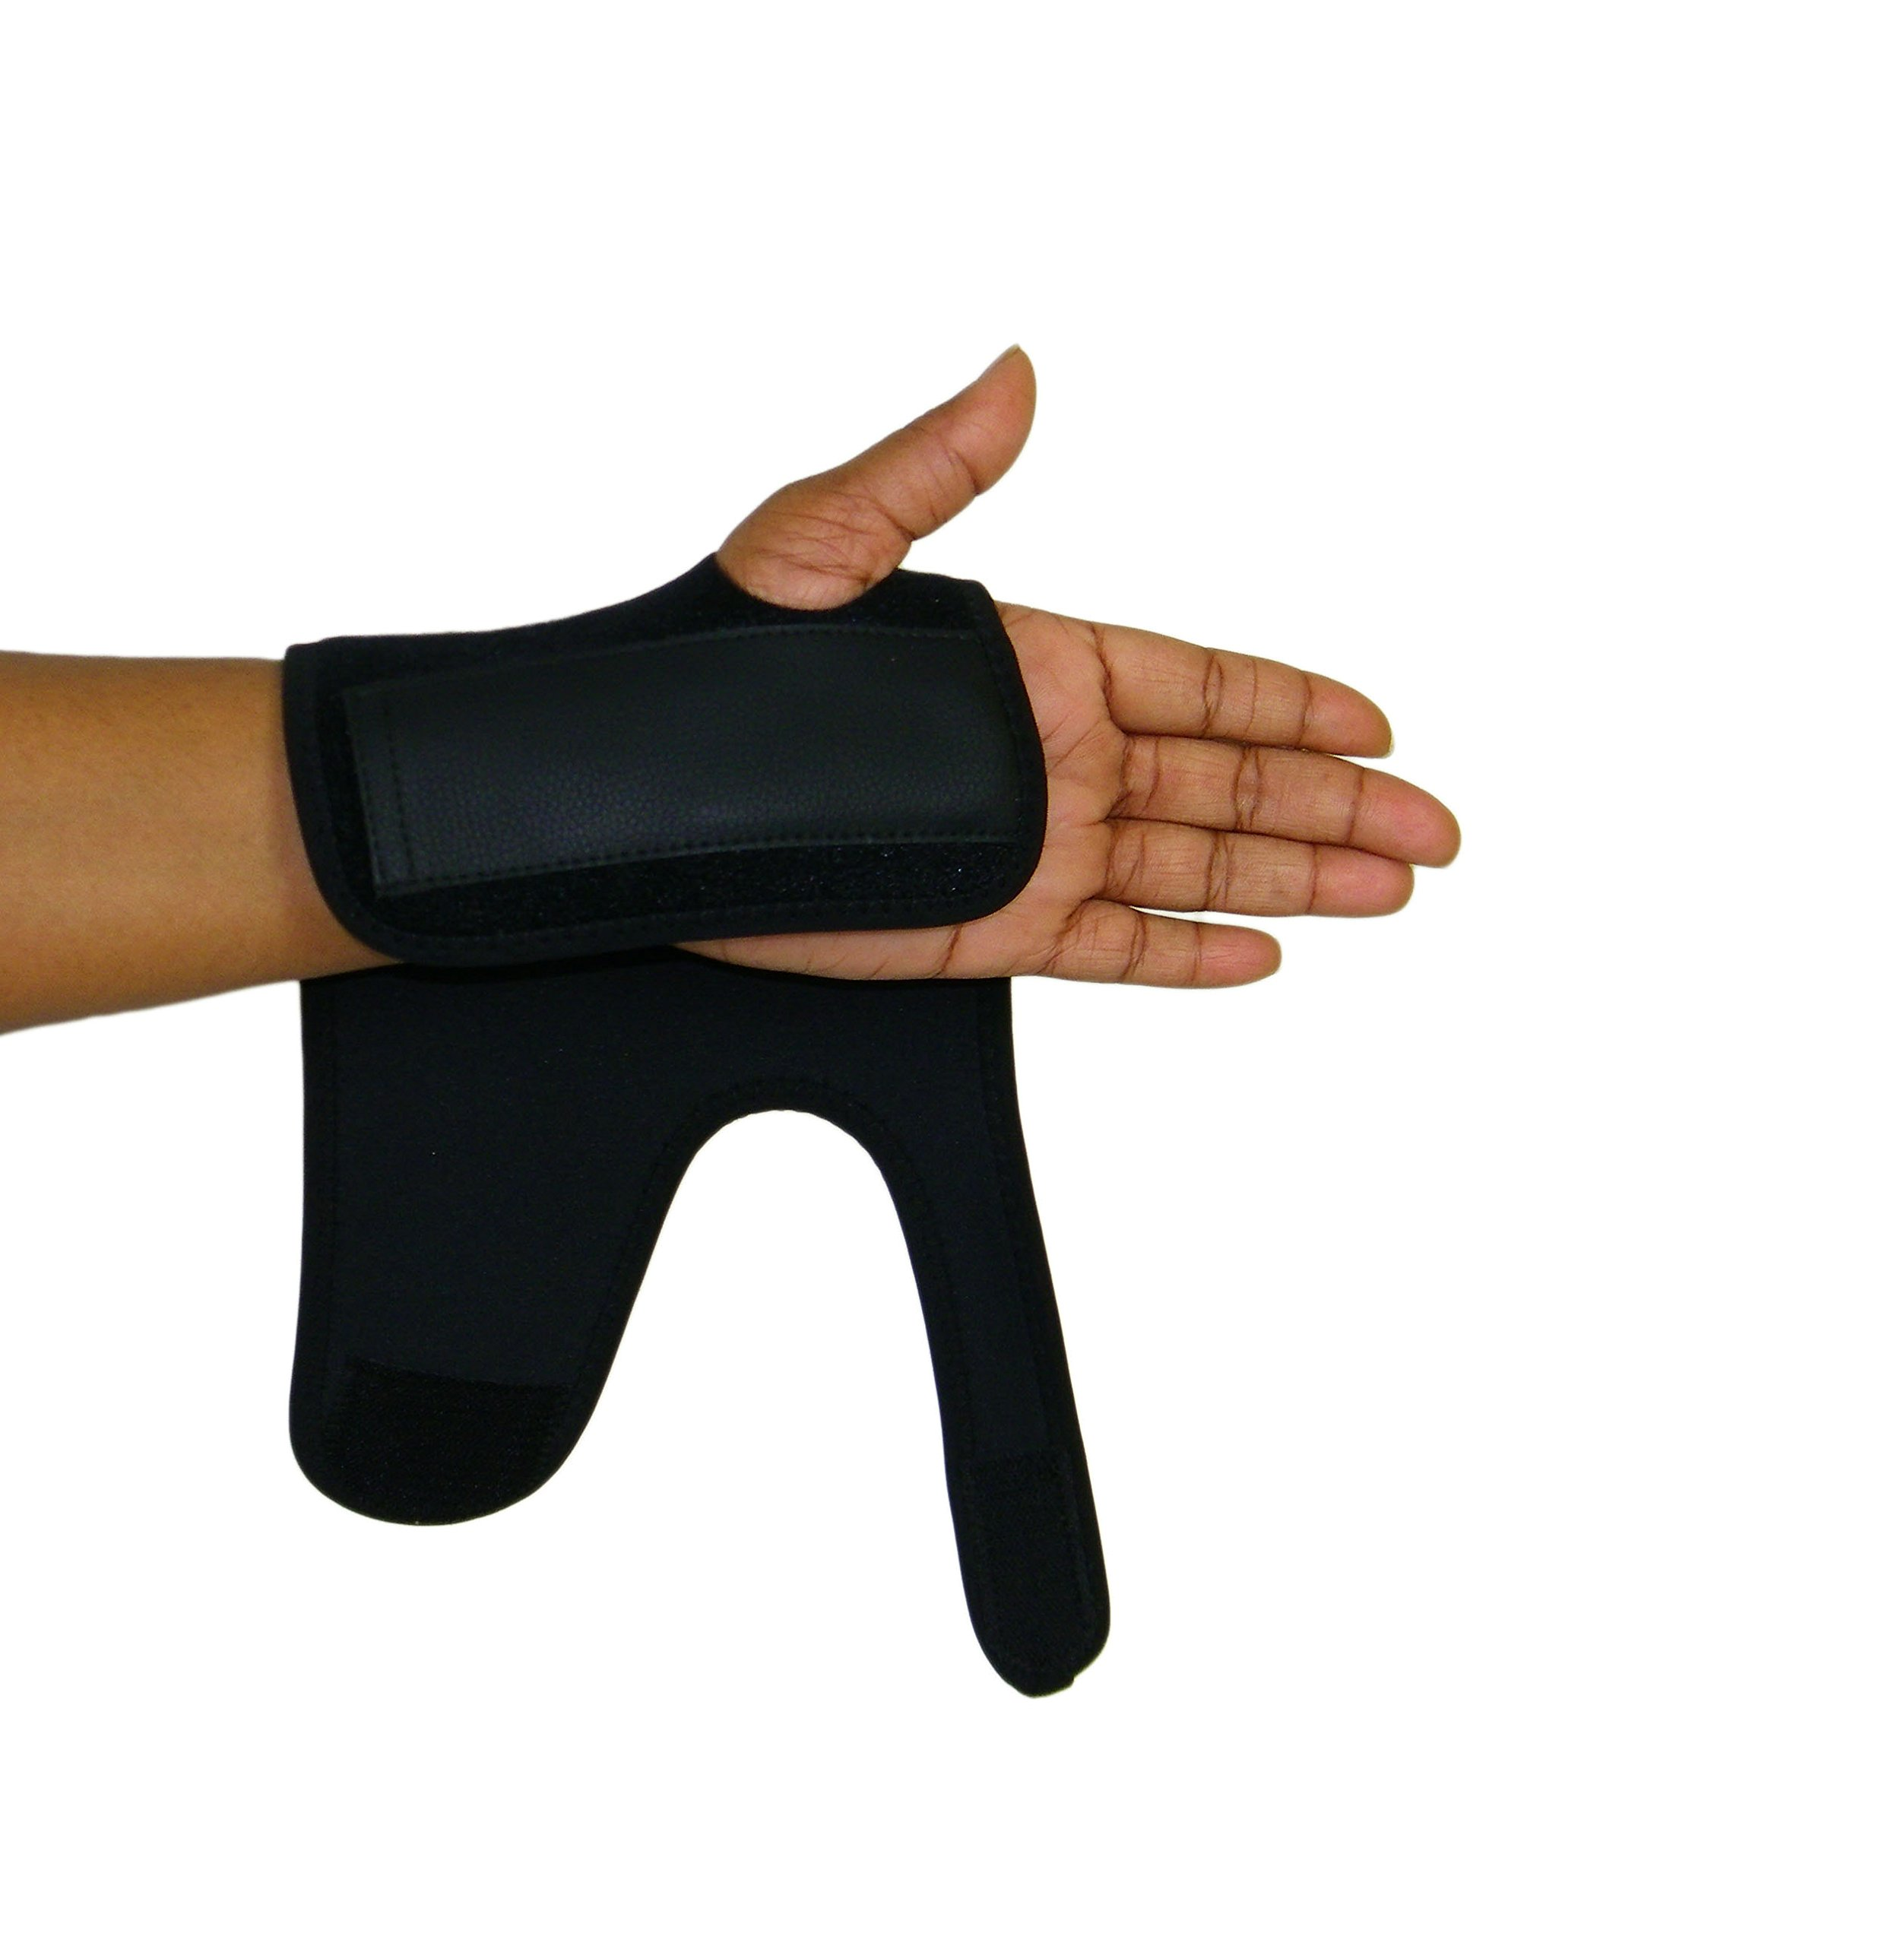 Scan Tru Carpal Tunnel Adjustable Wrist Brace Right Or Left for Women, Men Day Or Nighttime – Breathable, Thin with Metal Splint, Flexible Washable for Work Or Gaming (Short Right)